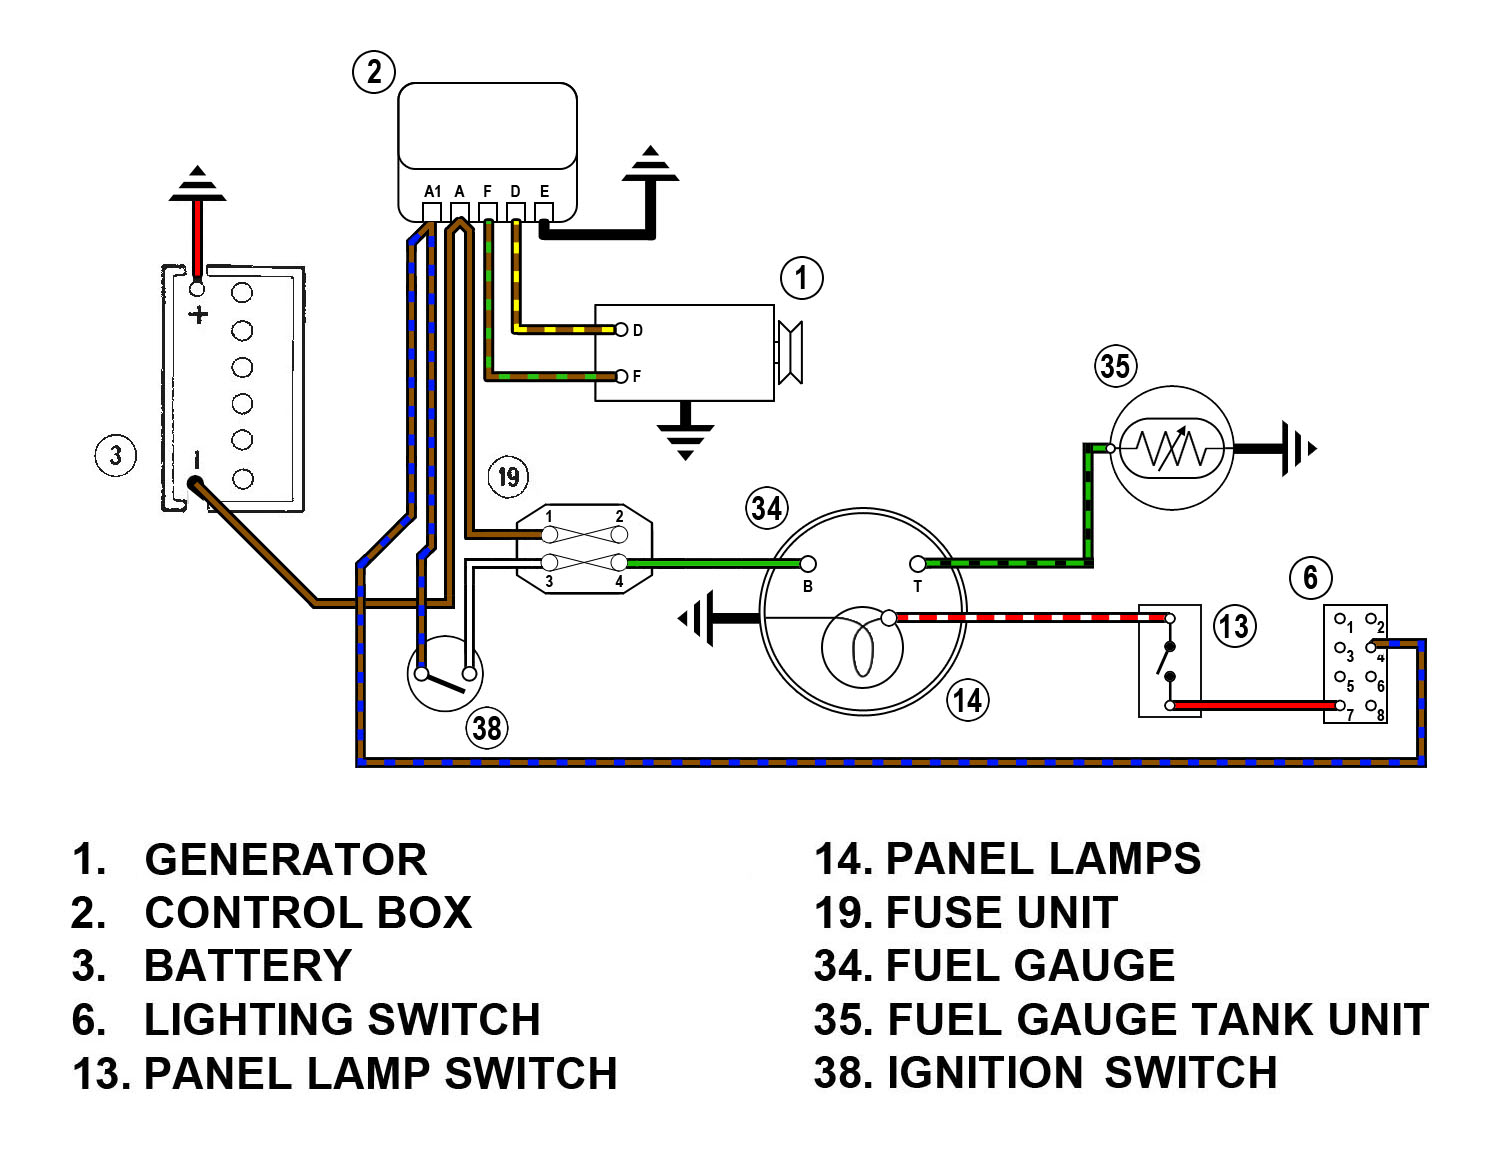 FuelGaugeWiringSpMkII_MGMkI gauge wiring diagram veethree gauges wiring diagrams \u2022 wiring aem 35 8460 wiring diagram at readyjetset.co